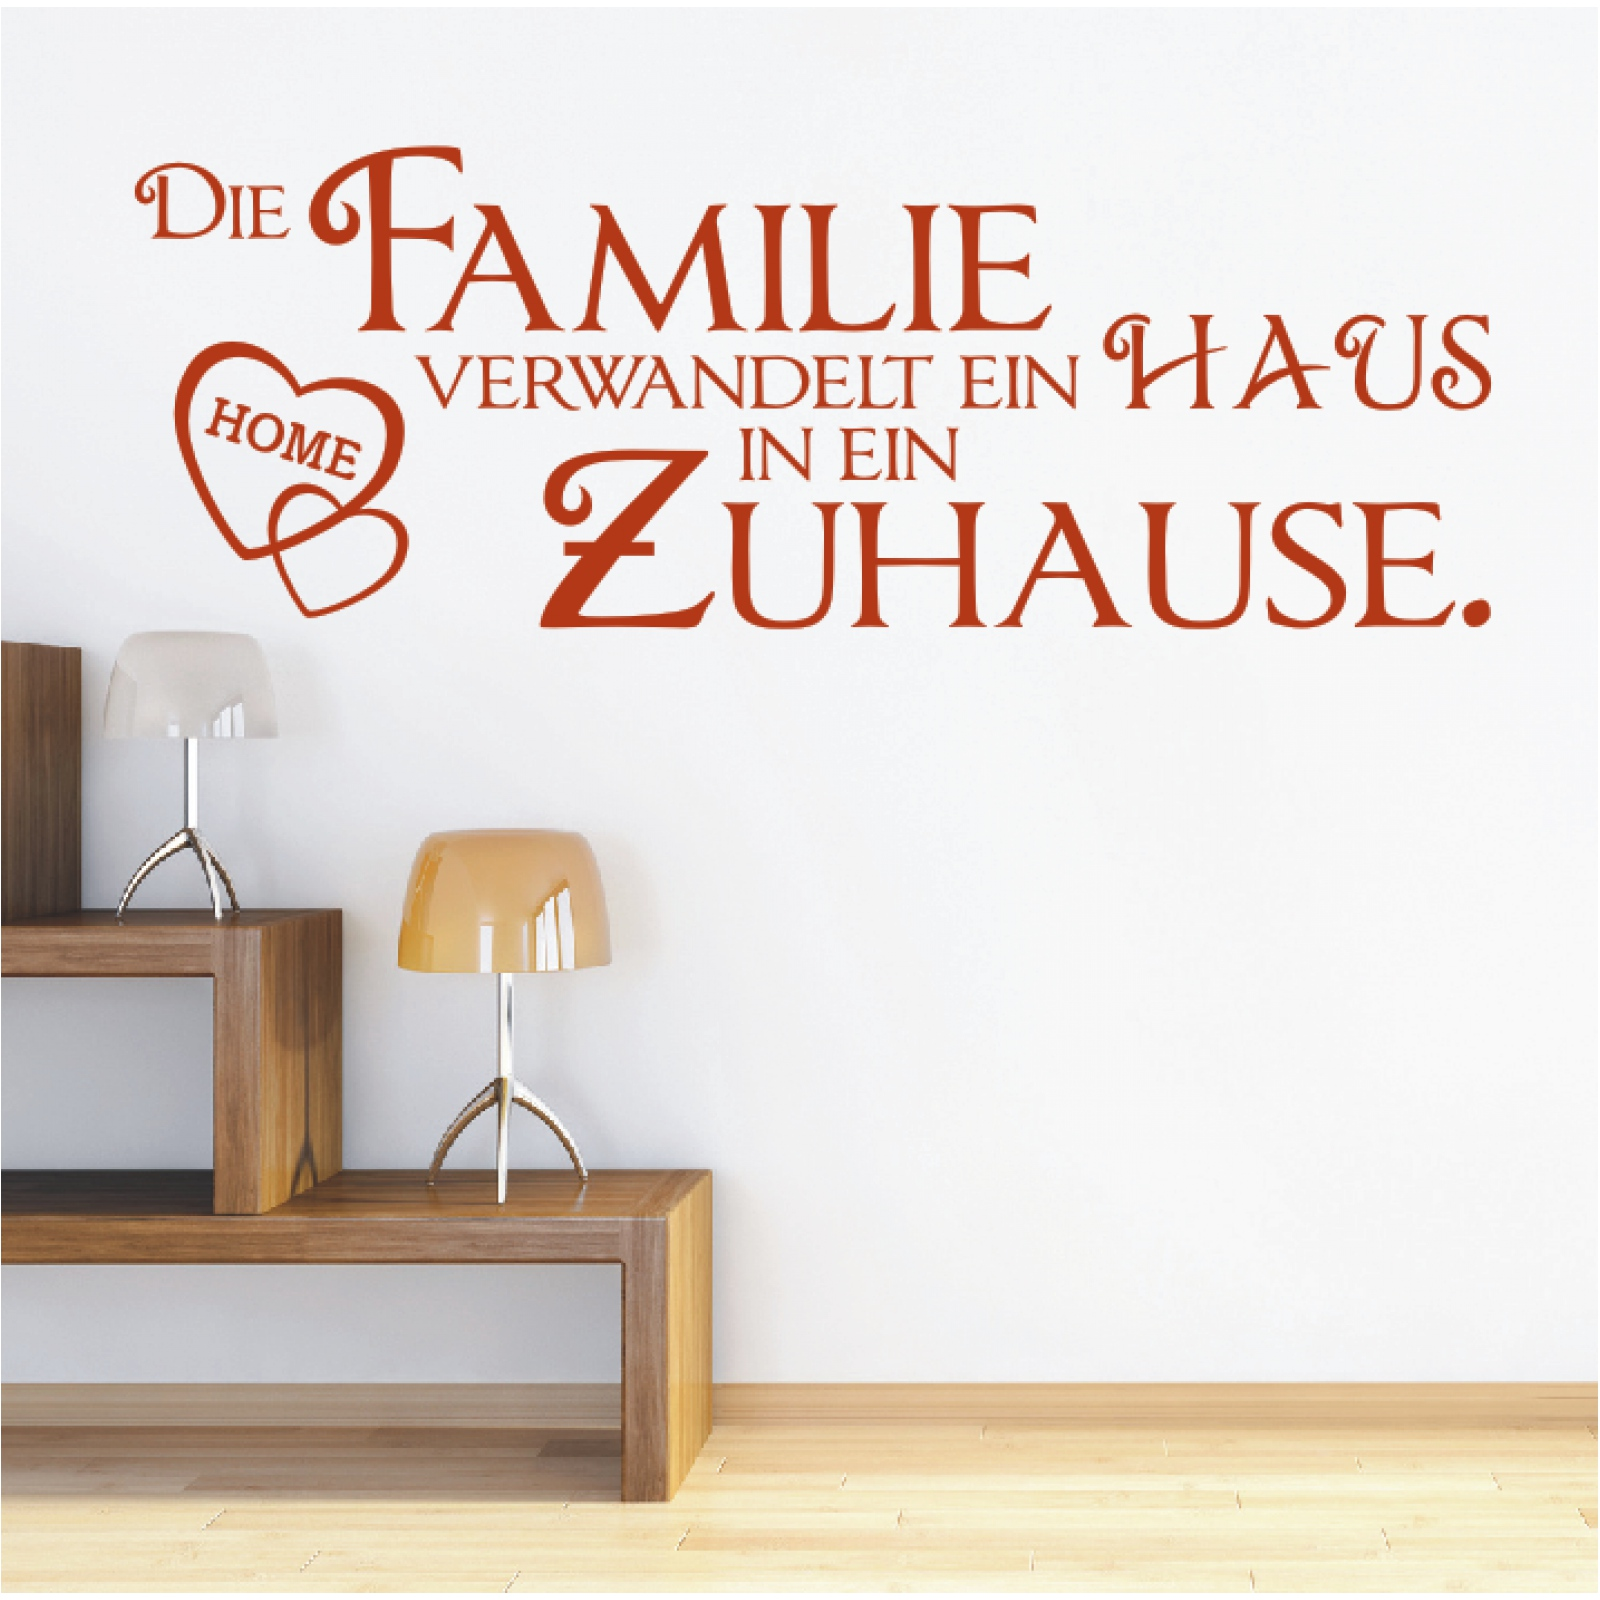 wandtattoo spruch die familie verwandelt haus in zuhause zitat wandaufkleber ebay. Black Bedroom Furniture Sets. Home Design Ideas